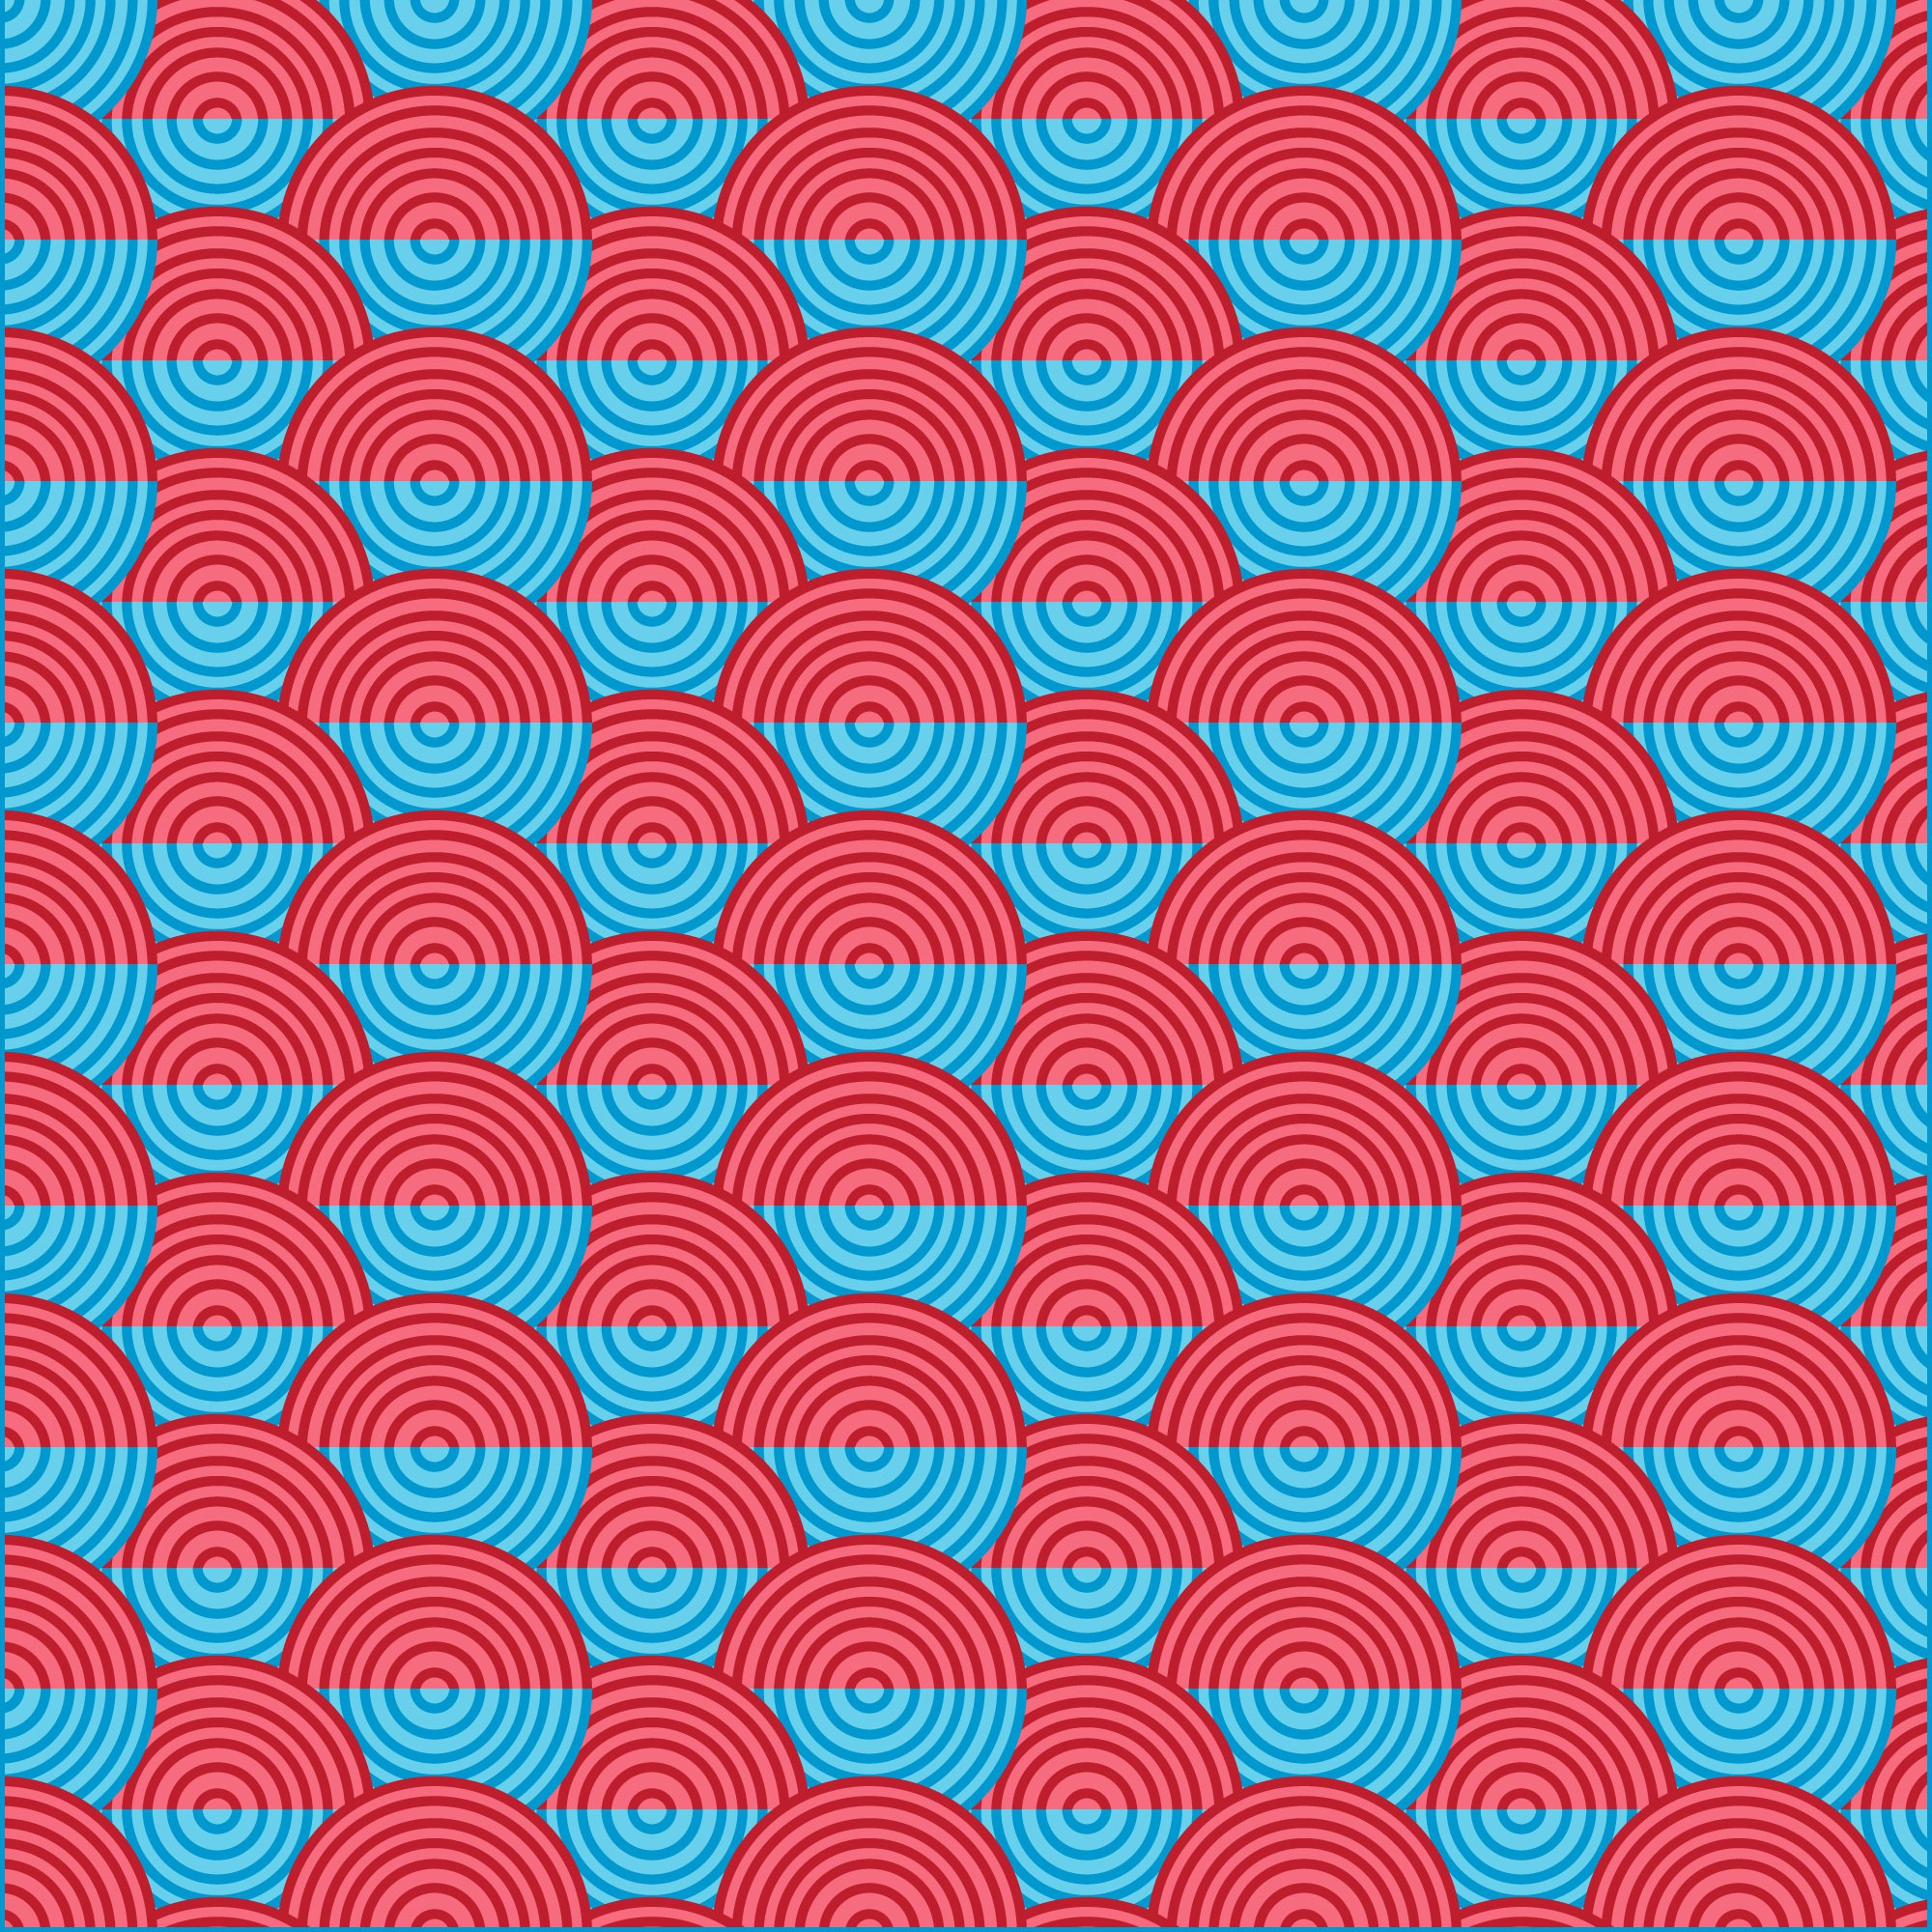 Colorful circle waves background